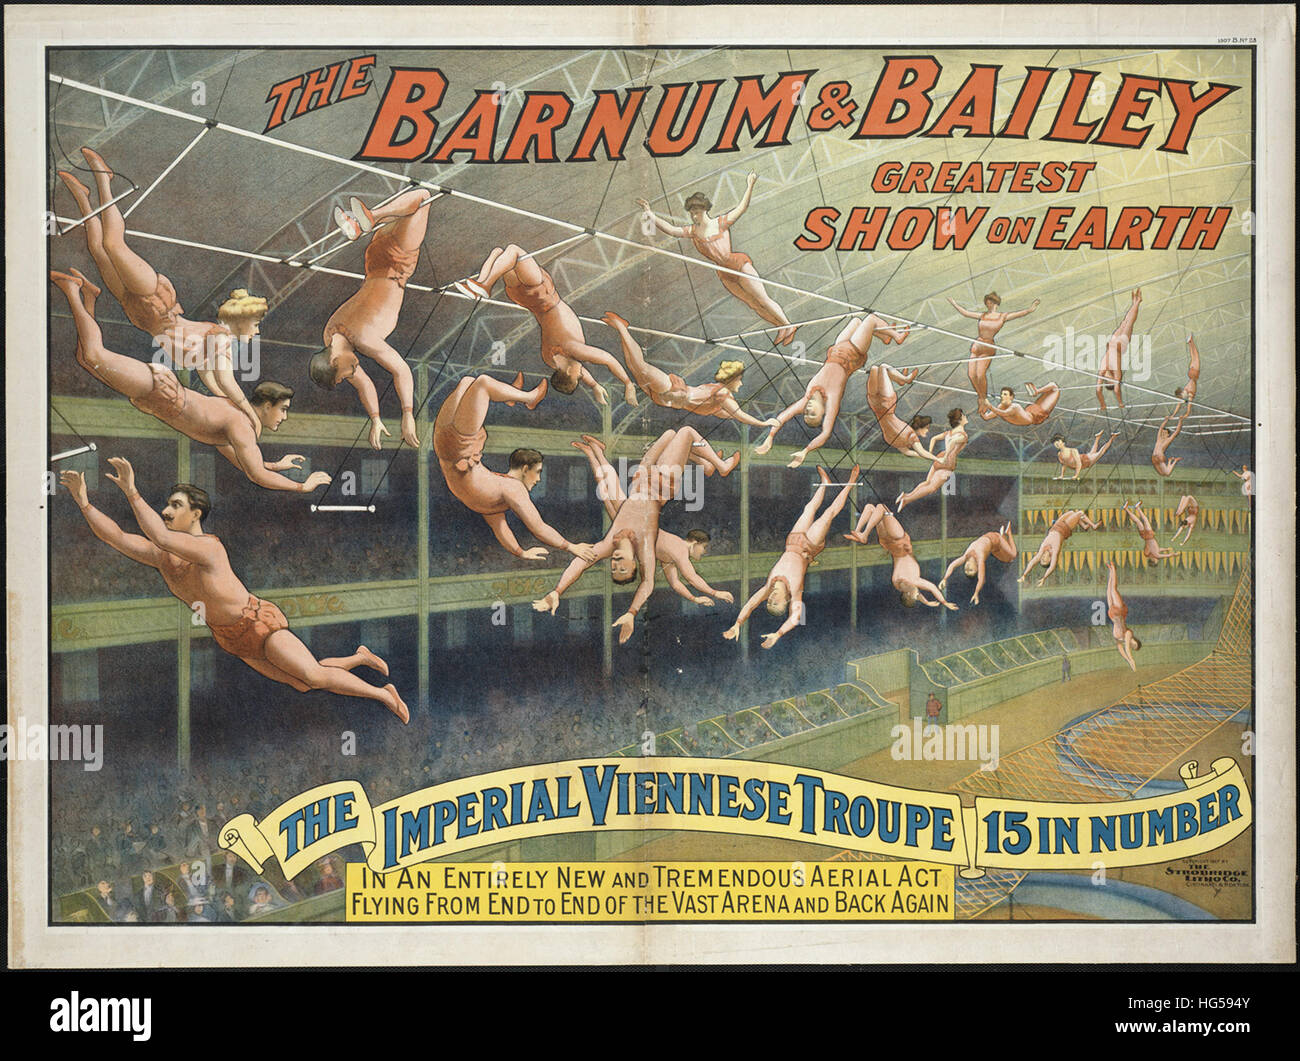 Affiche de cirque Barnum & Bailey - Le plus grand spectacle sur terre _ La troupe viennoise impériale, Photo Stock